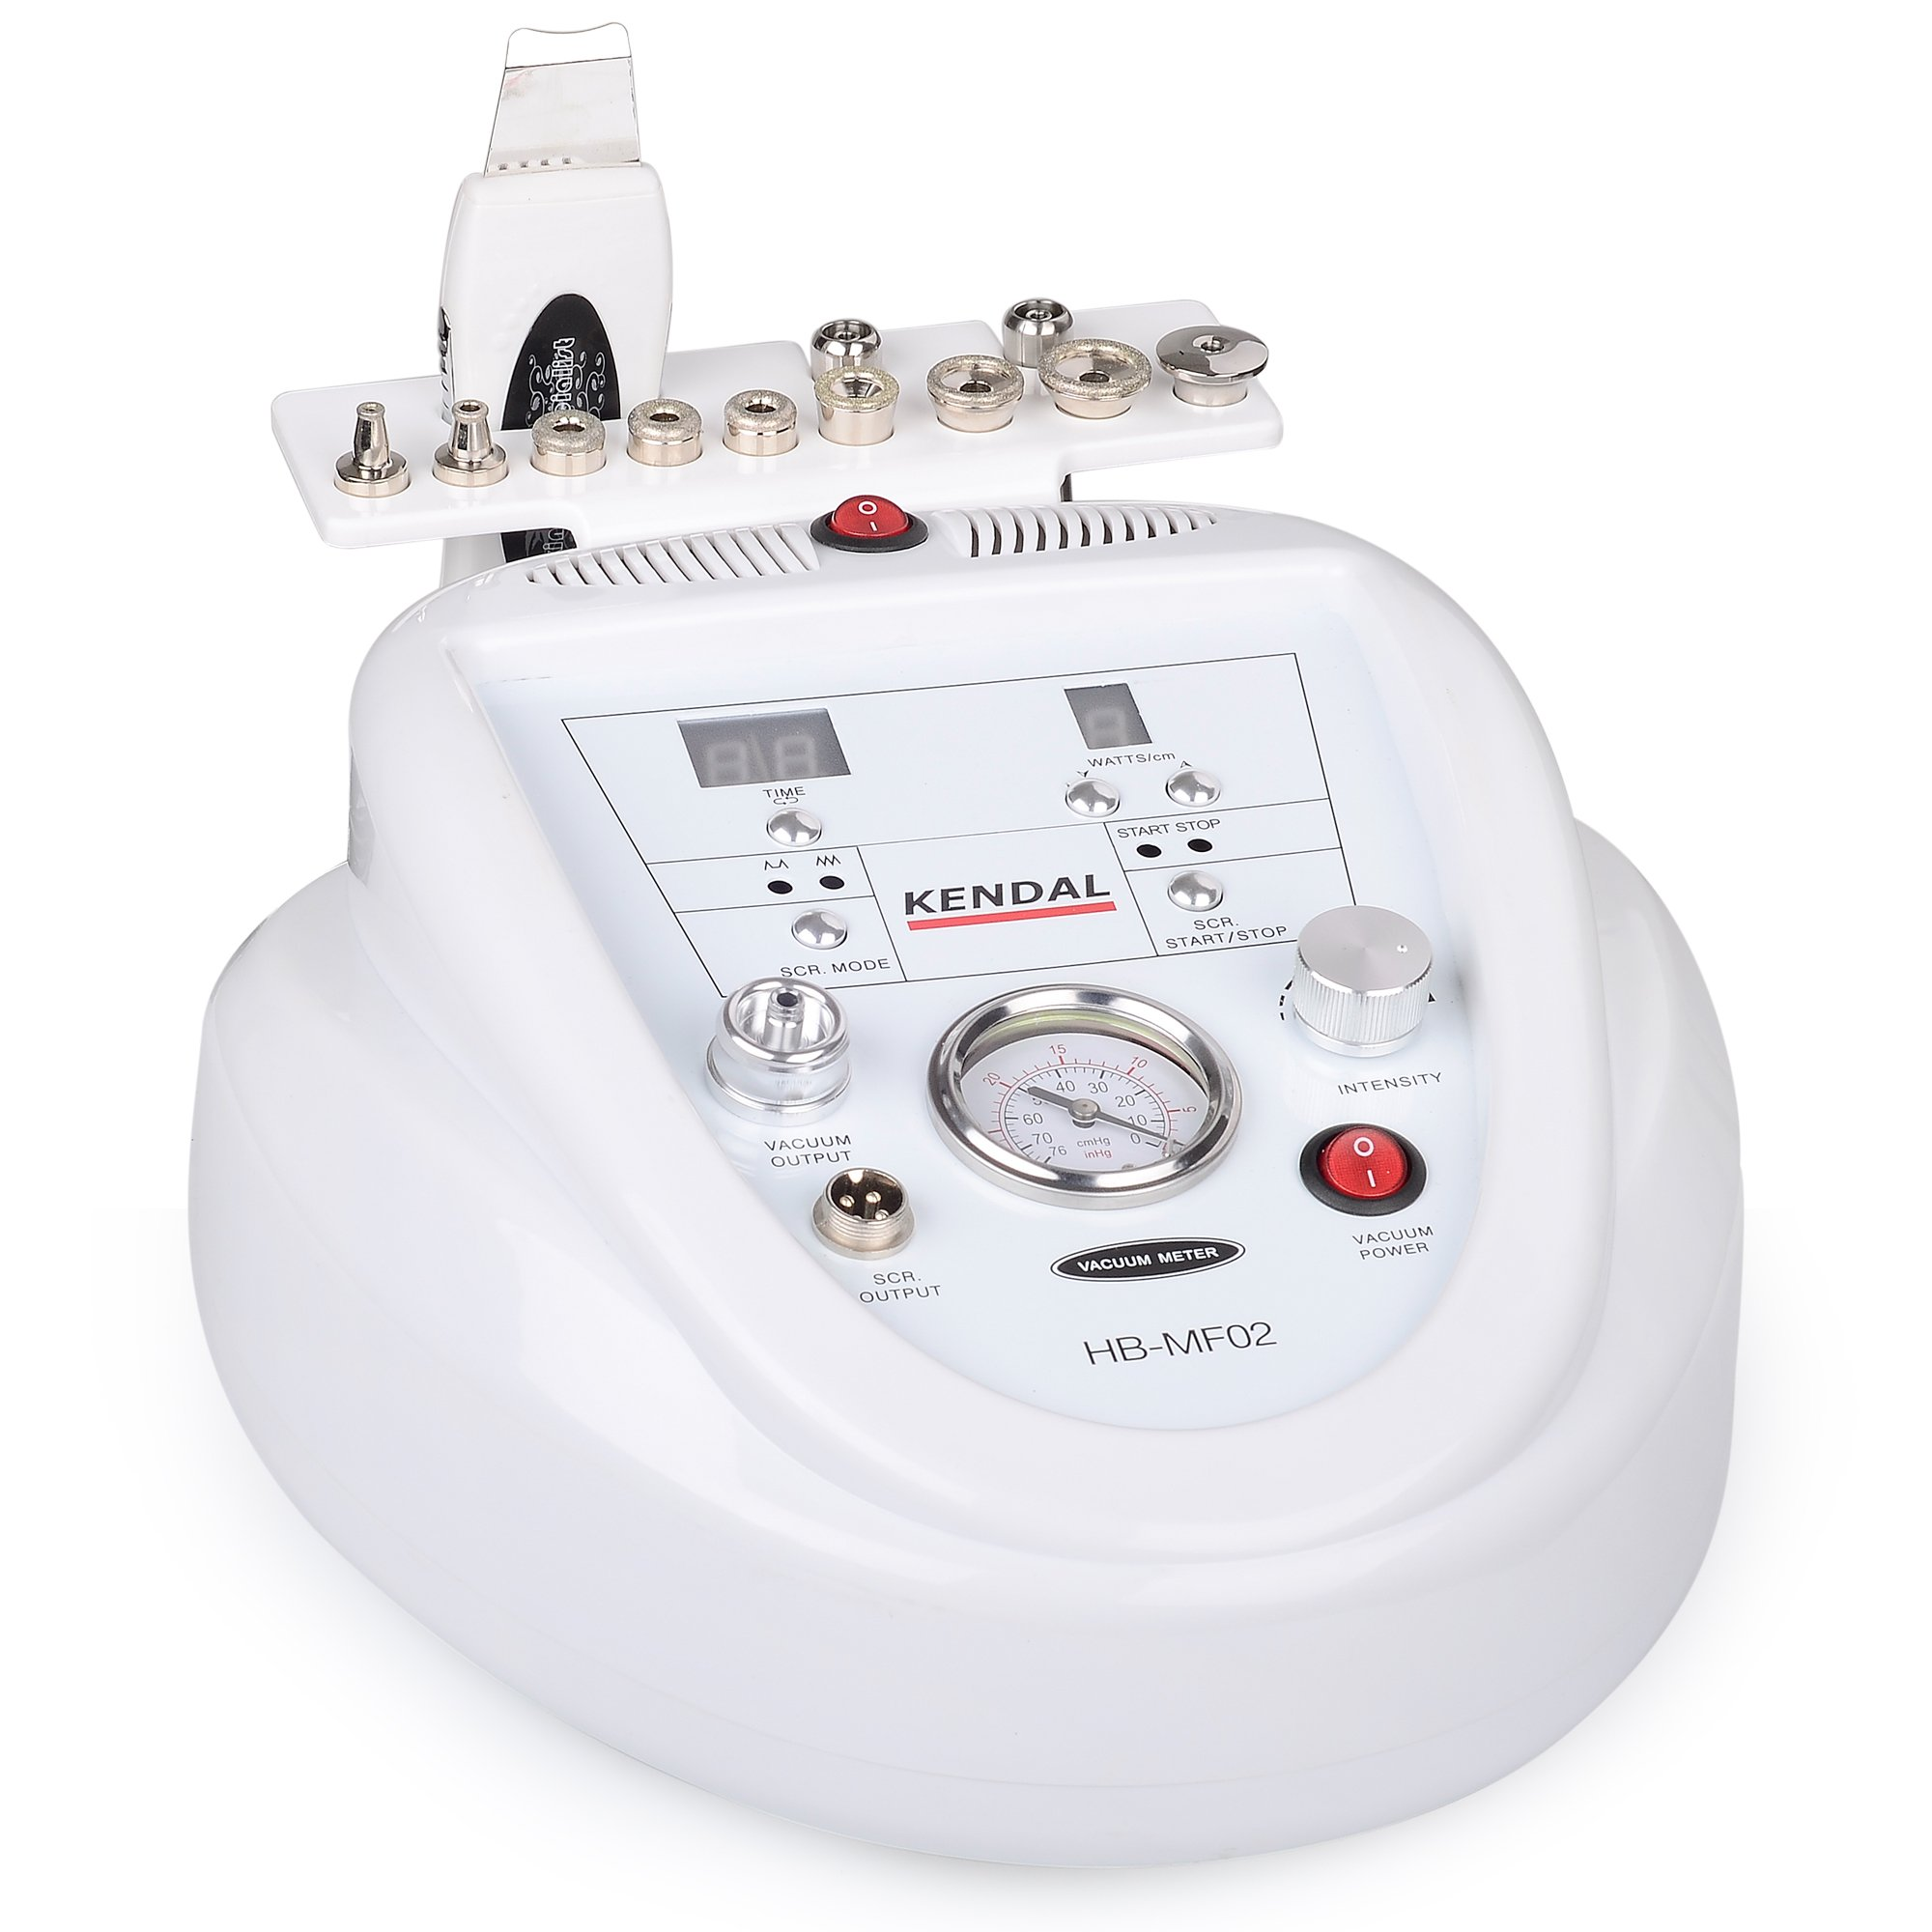 Kendal 2 in 1 Professional Diamond Microdermabrasion Machine with Skin Scrubber Function HB-MF02